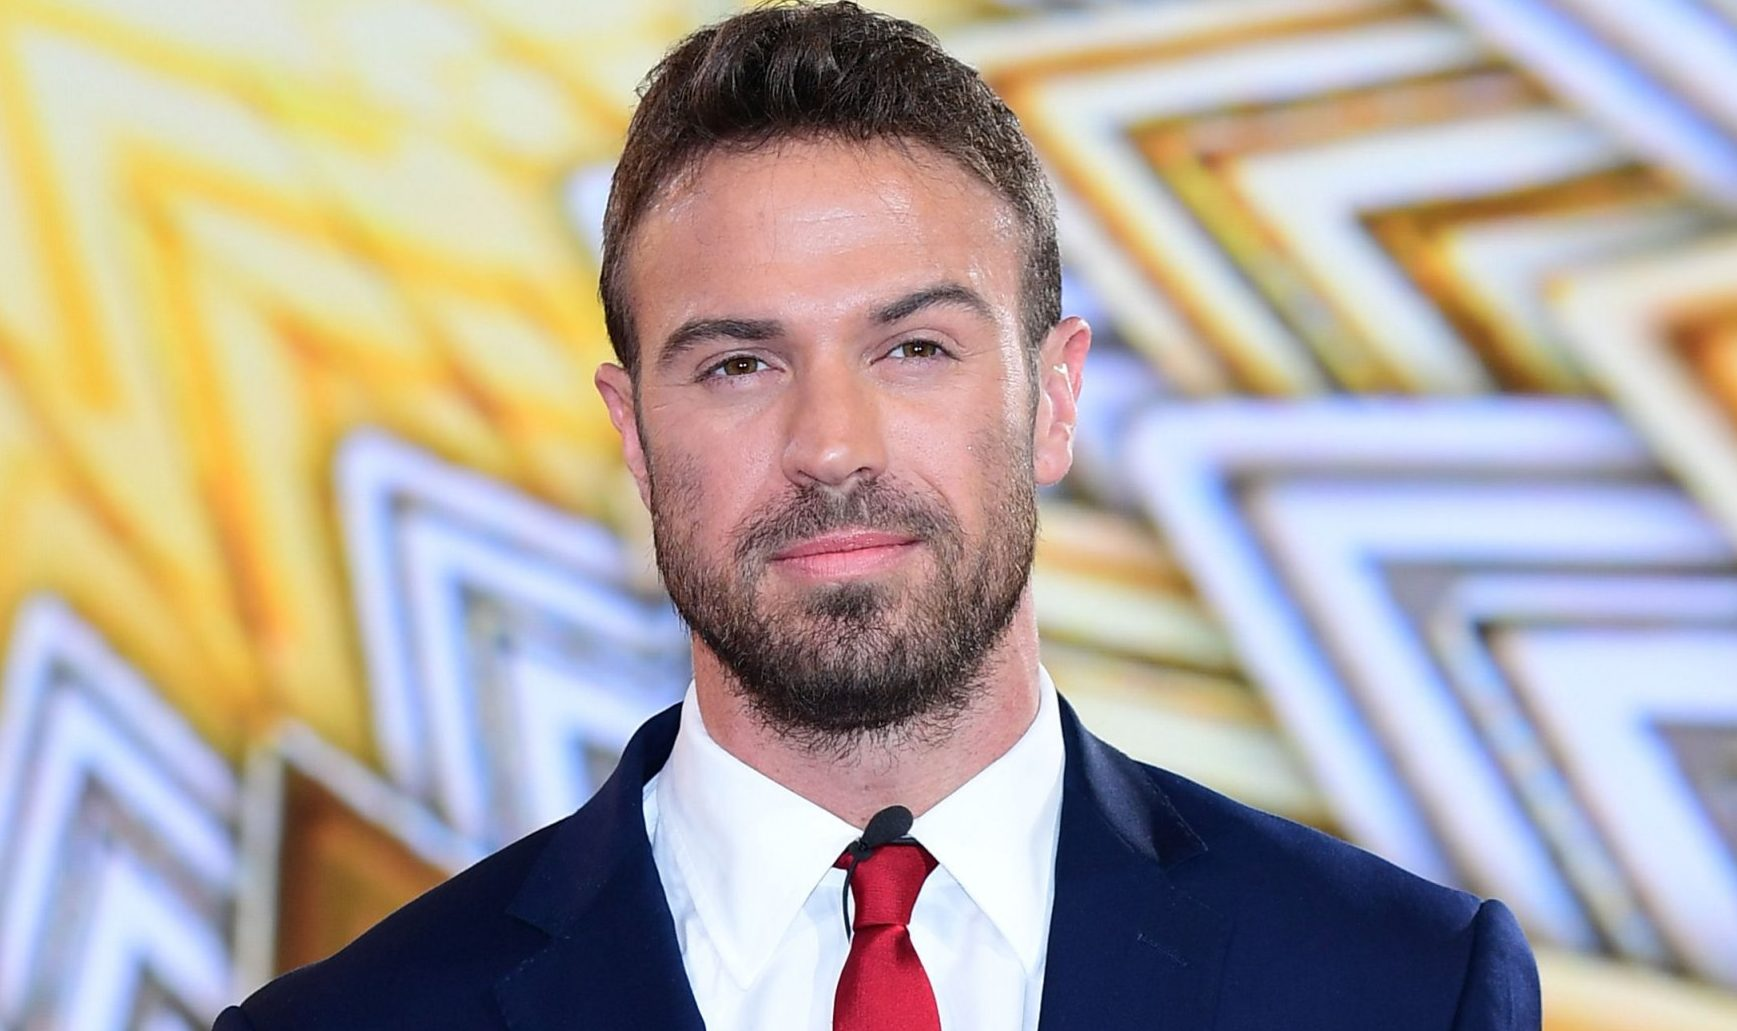 Chad Johnson is evicted during the live final of Celebrity Big Brother, at Elstree Studios in Borehamwood, Hertfordshire. PRESS ASSOCIATION Photo. Picture date: Friday August 25, 2017. Photo credit should read: Ian West/PA Wire.